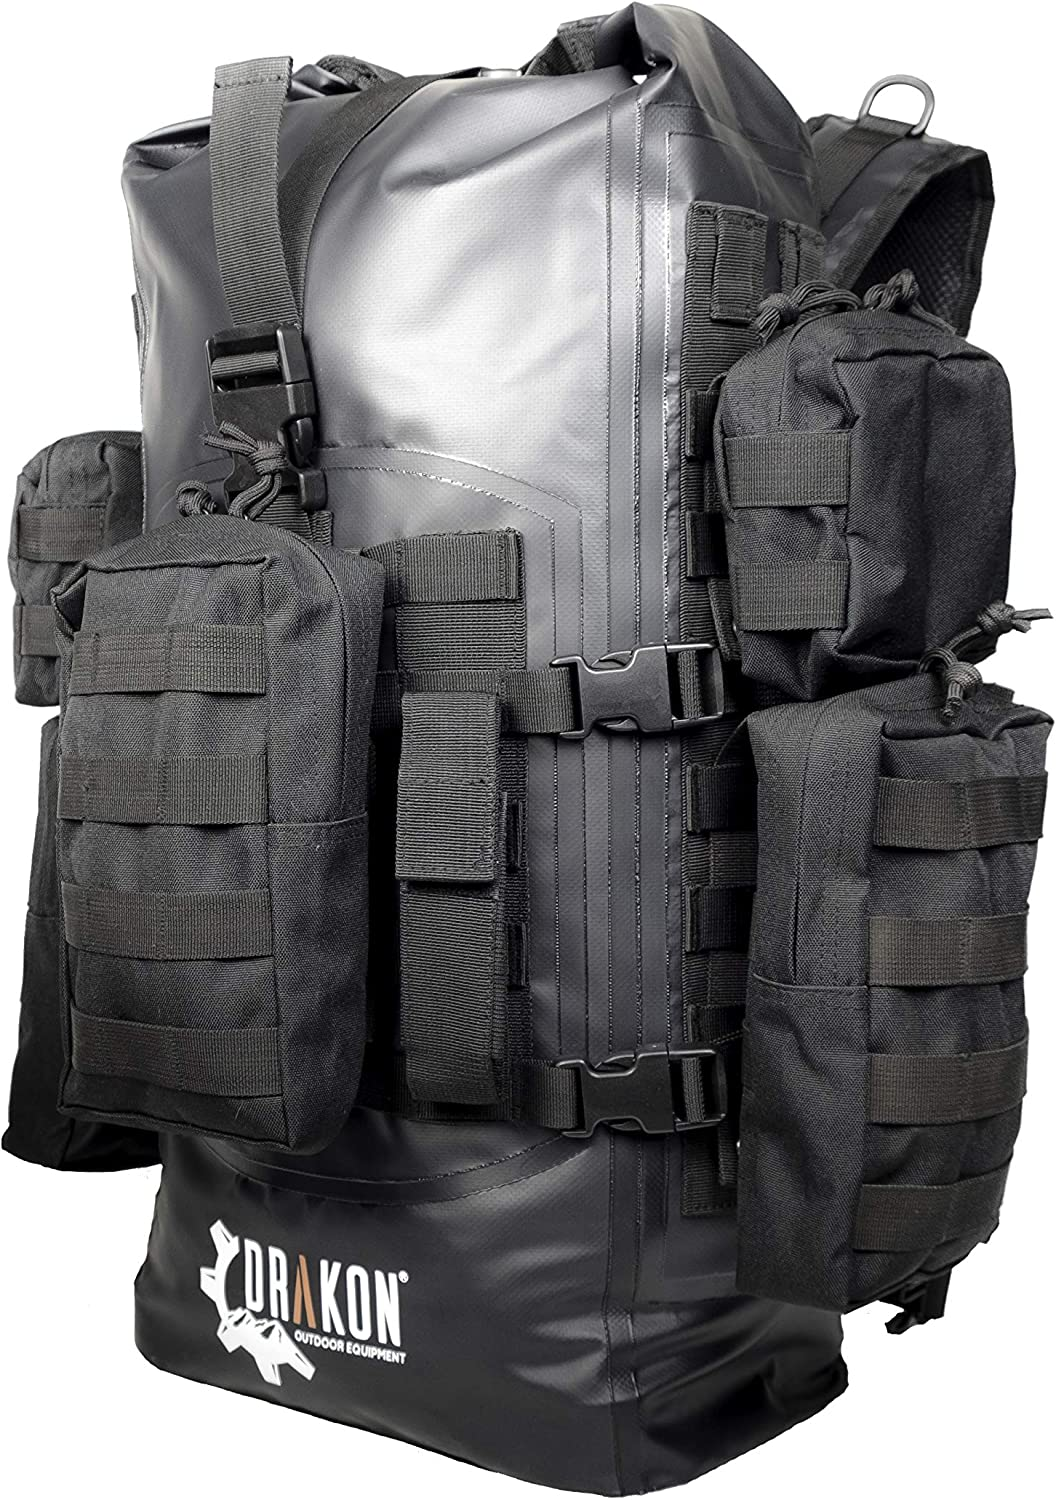 Amazon.com: Drakon Outdoors 40L Waterproof Dry Bag Survival Backpack - Roll  Top Go-Bag Perfect for Hunting, Camping, Boating, Kayaking - Black Padded  Adjustable Straps With MOLLE System